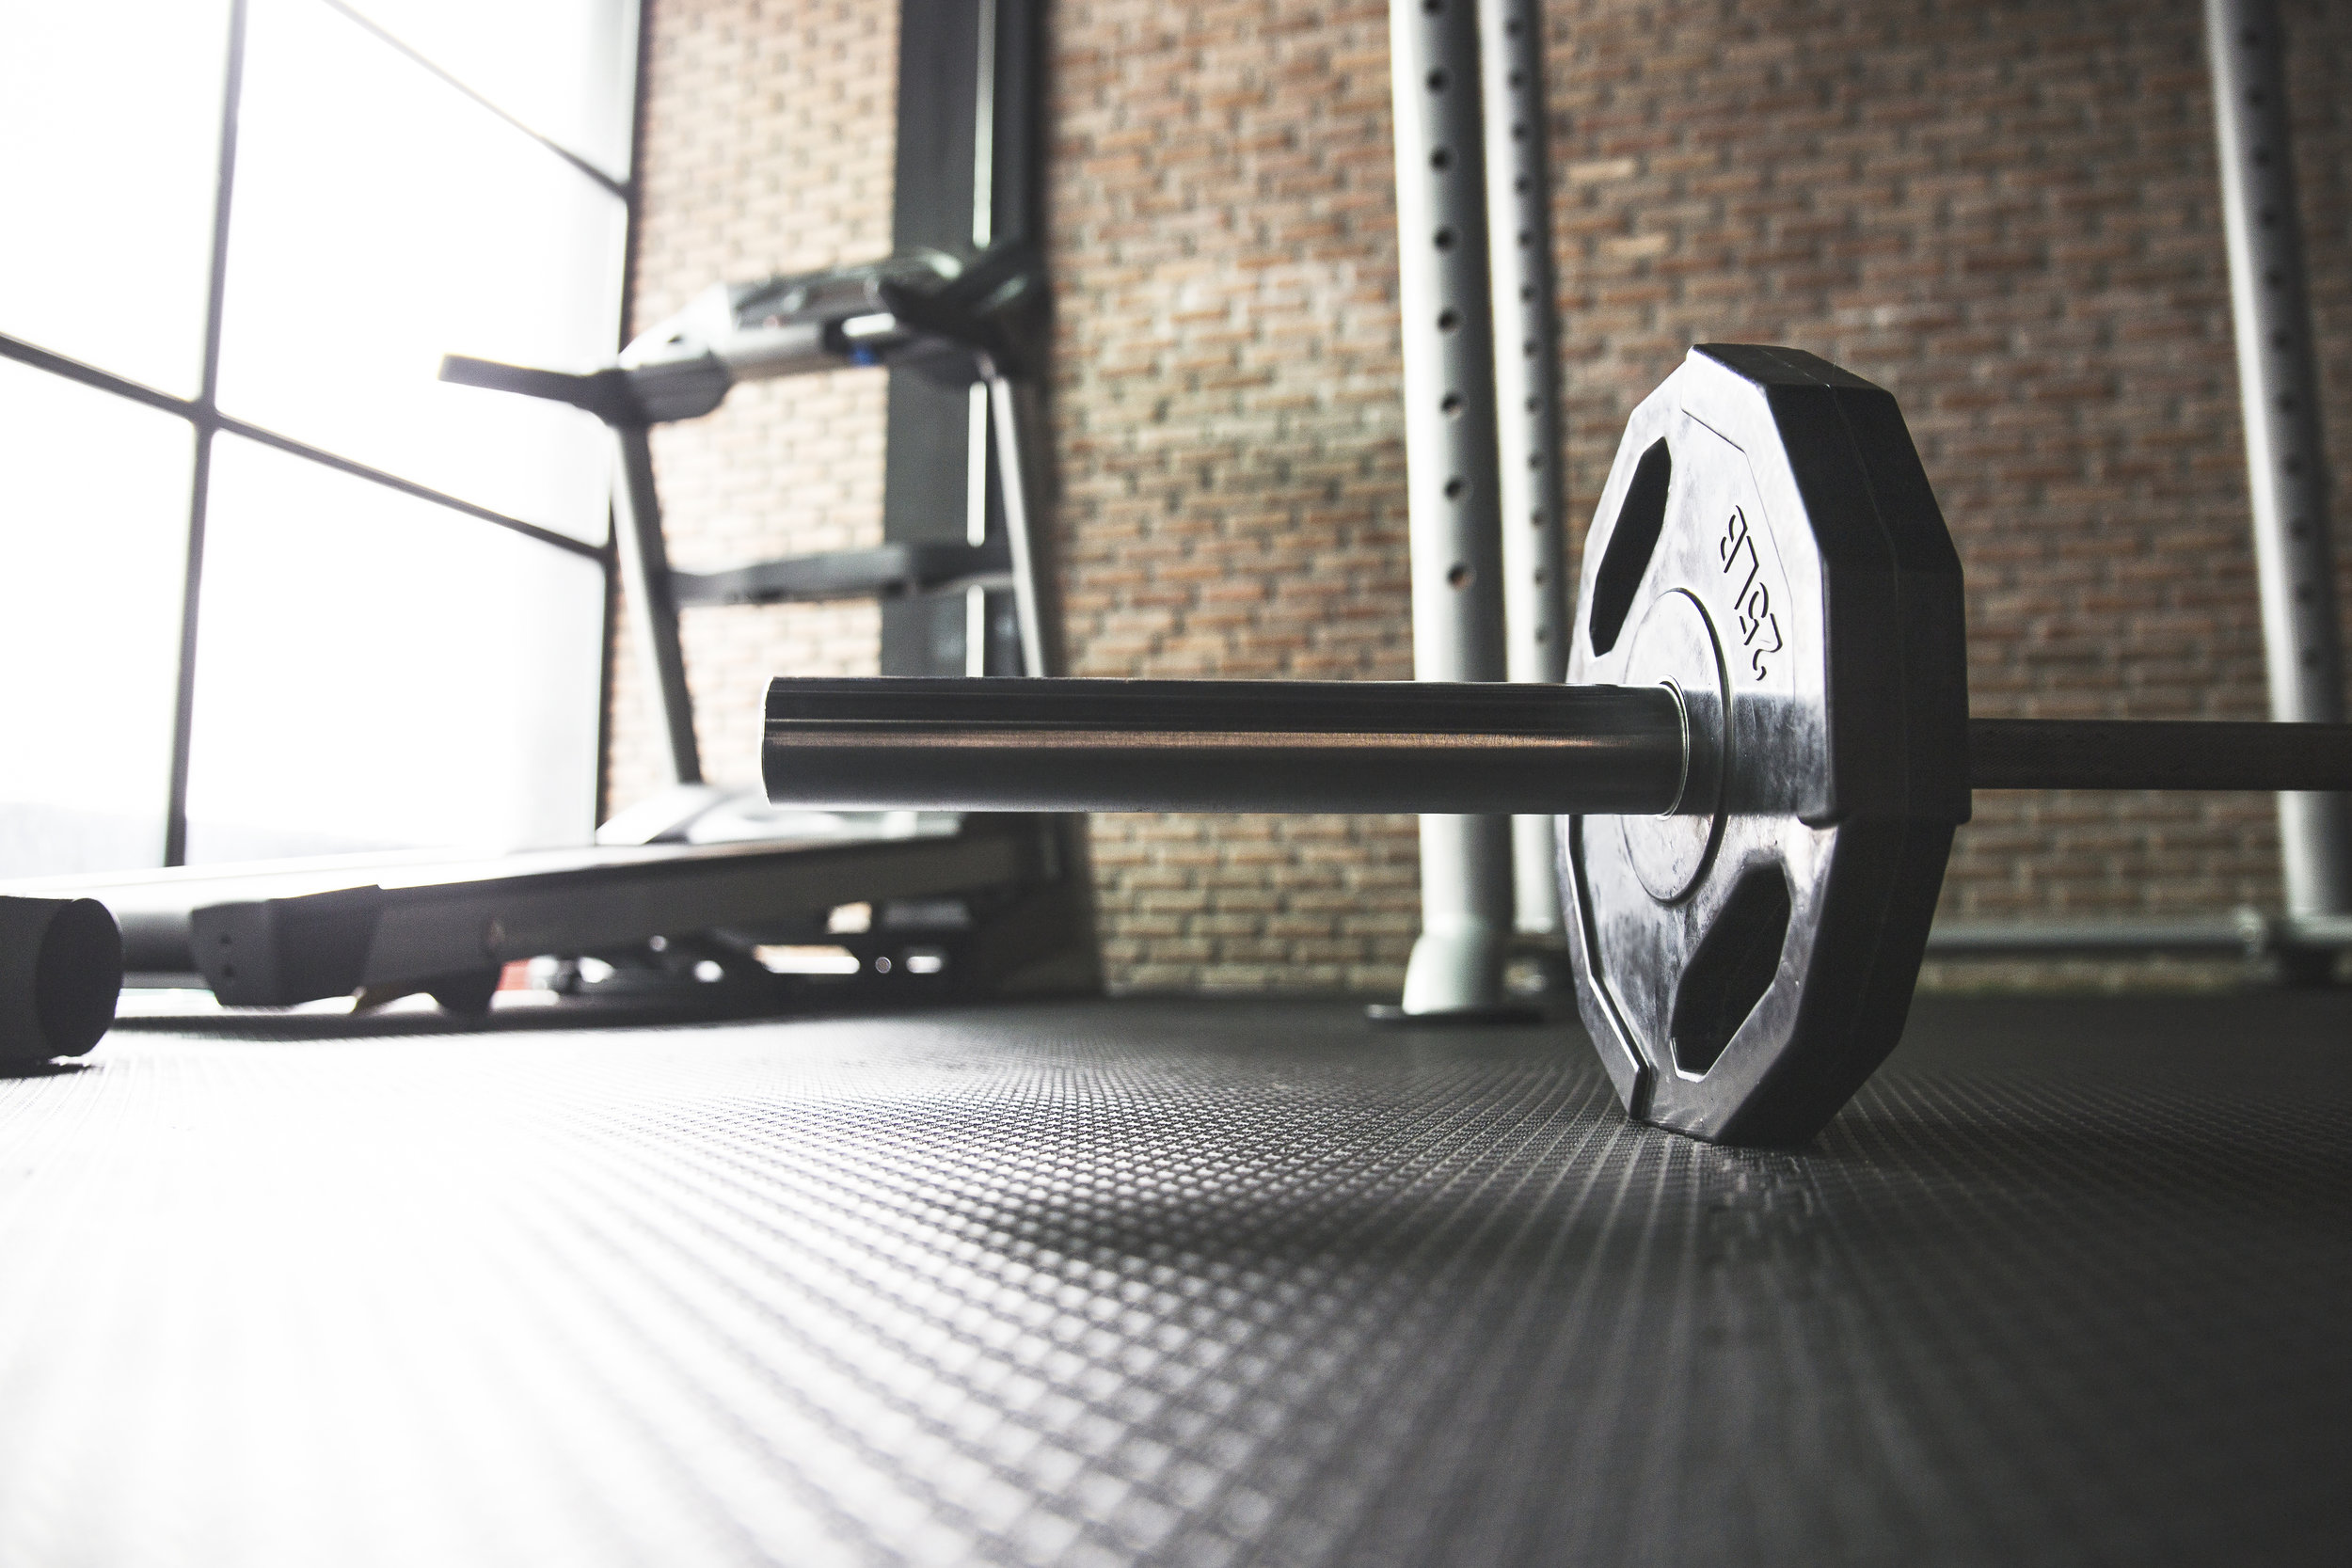 - Imagine Lab agents will enjoy a complimentary membership to Stamford Landing's on-site state-of-the-art fitness facility. Choose from a variety of equipment and machines to help you reach your health and fitness goals.